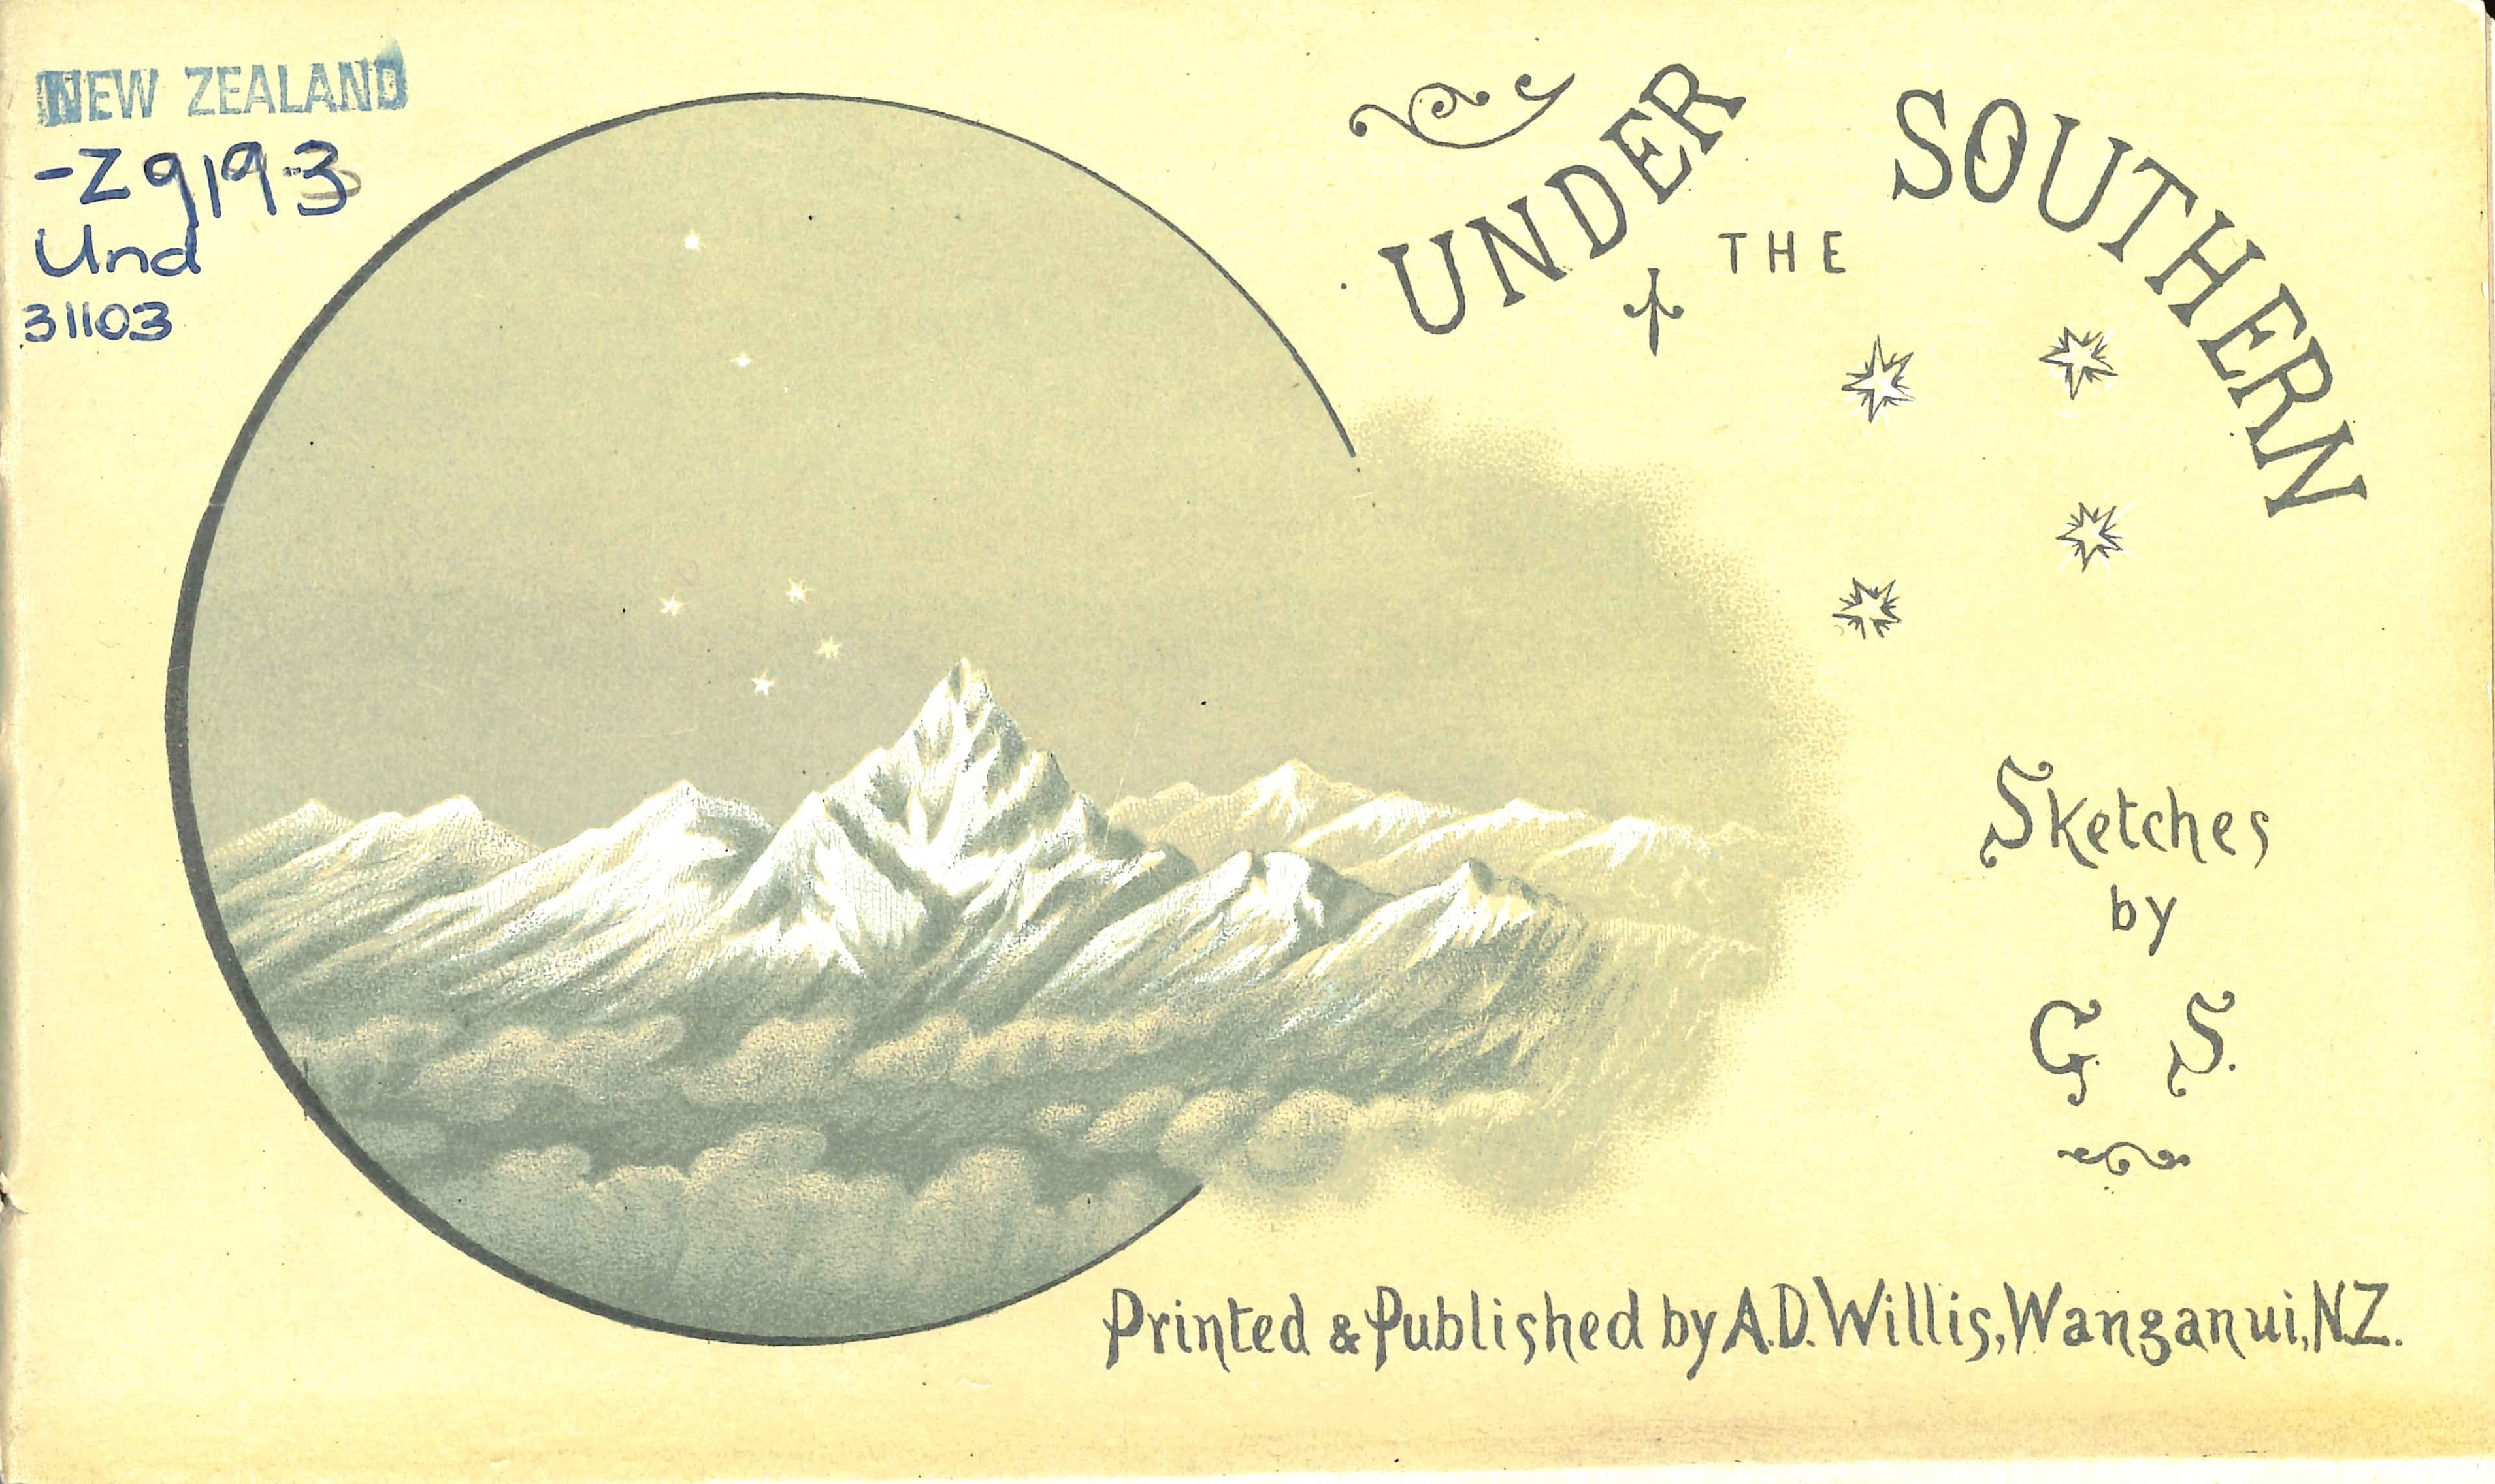 Under the Southern [Cross]. Introductory poem by E.E.M. Montgomery ; illustrations by George Sherriff. Wanganui: A.D. Willis, 1890.